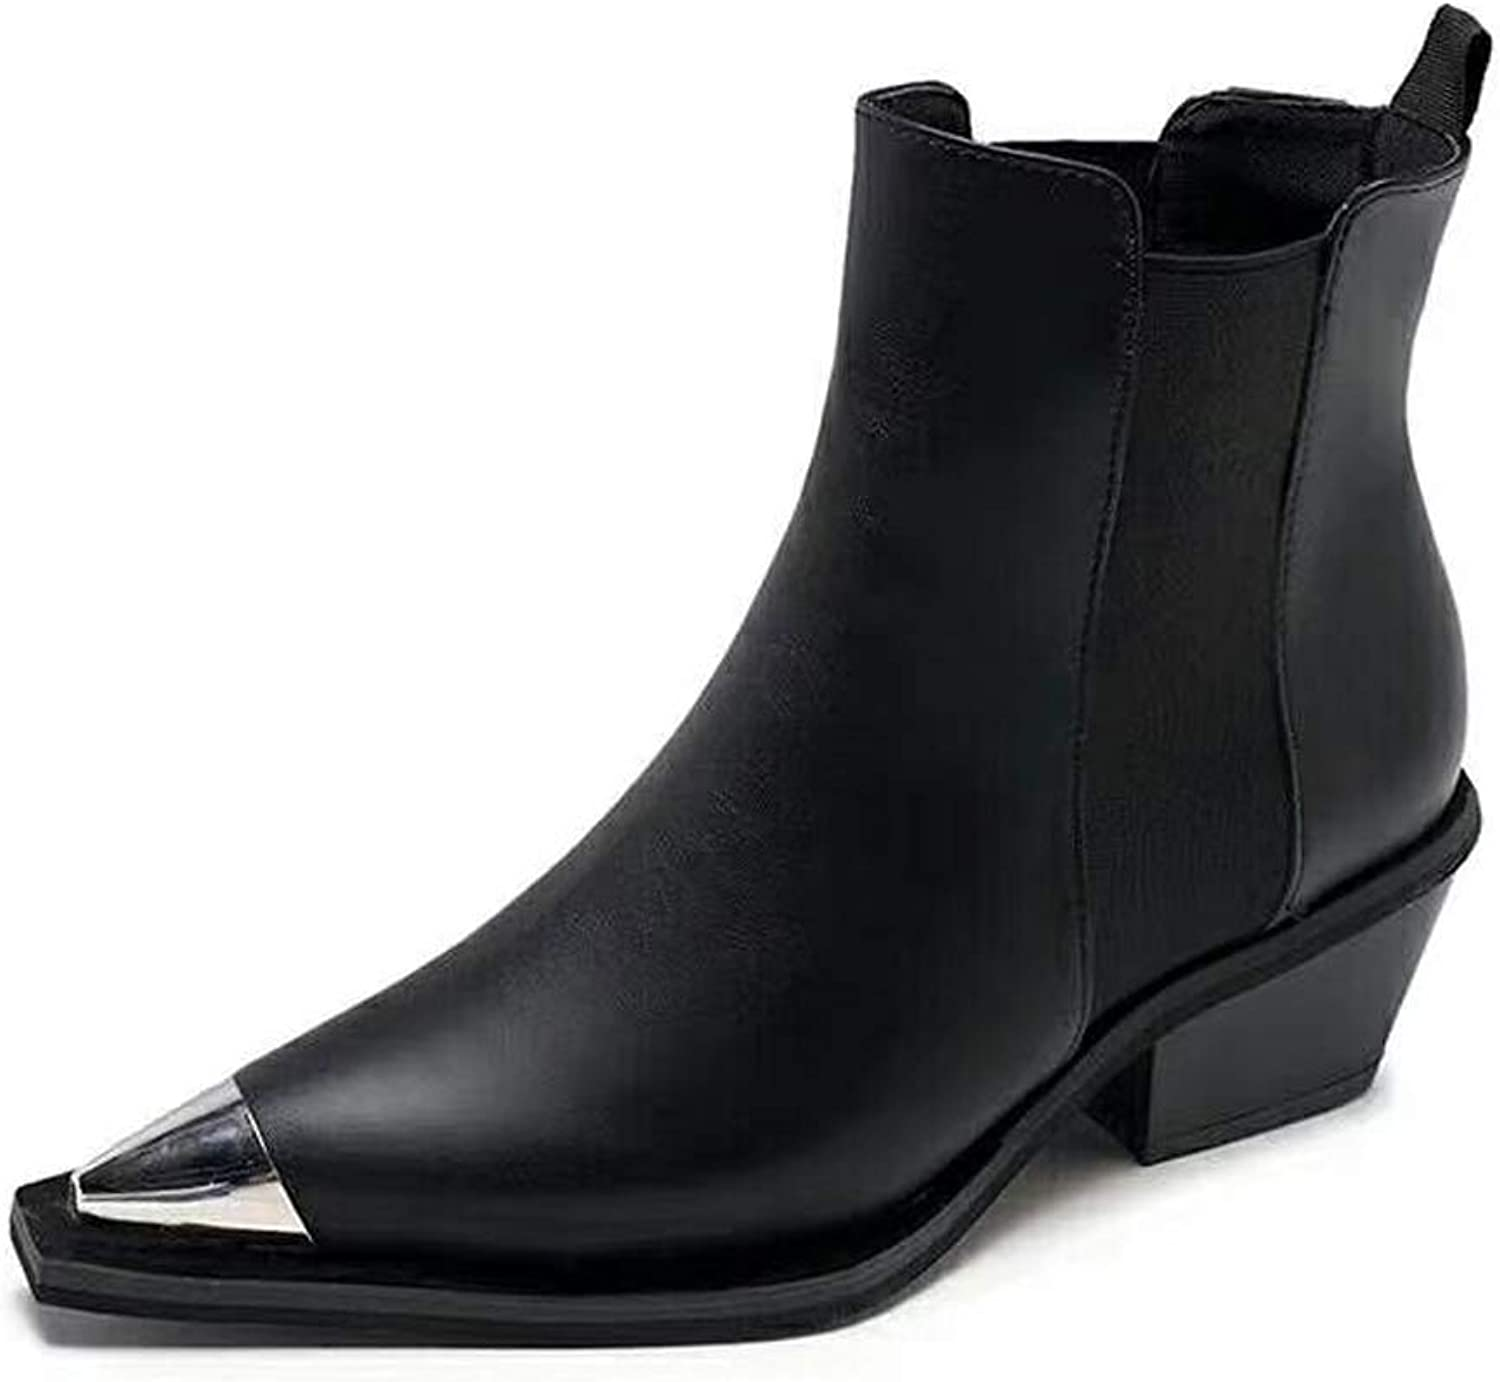 ZBW Women's Pointed Toe Chelsea Boots Thick Heel Bare Boots Black